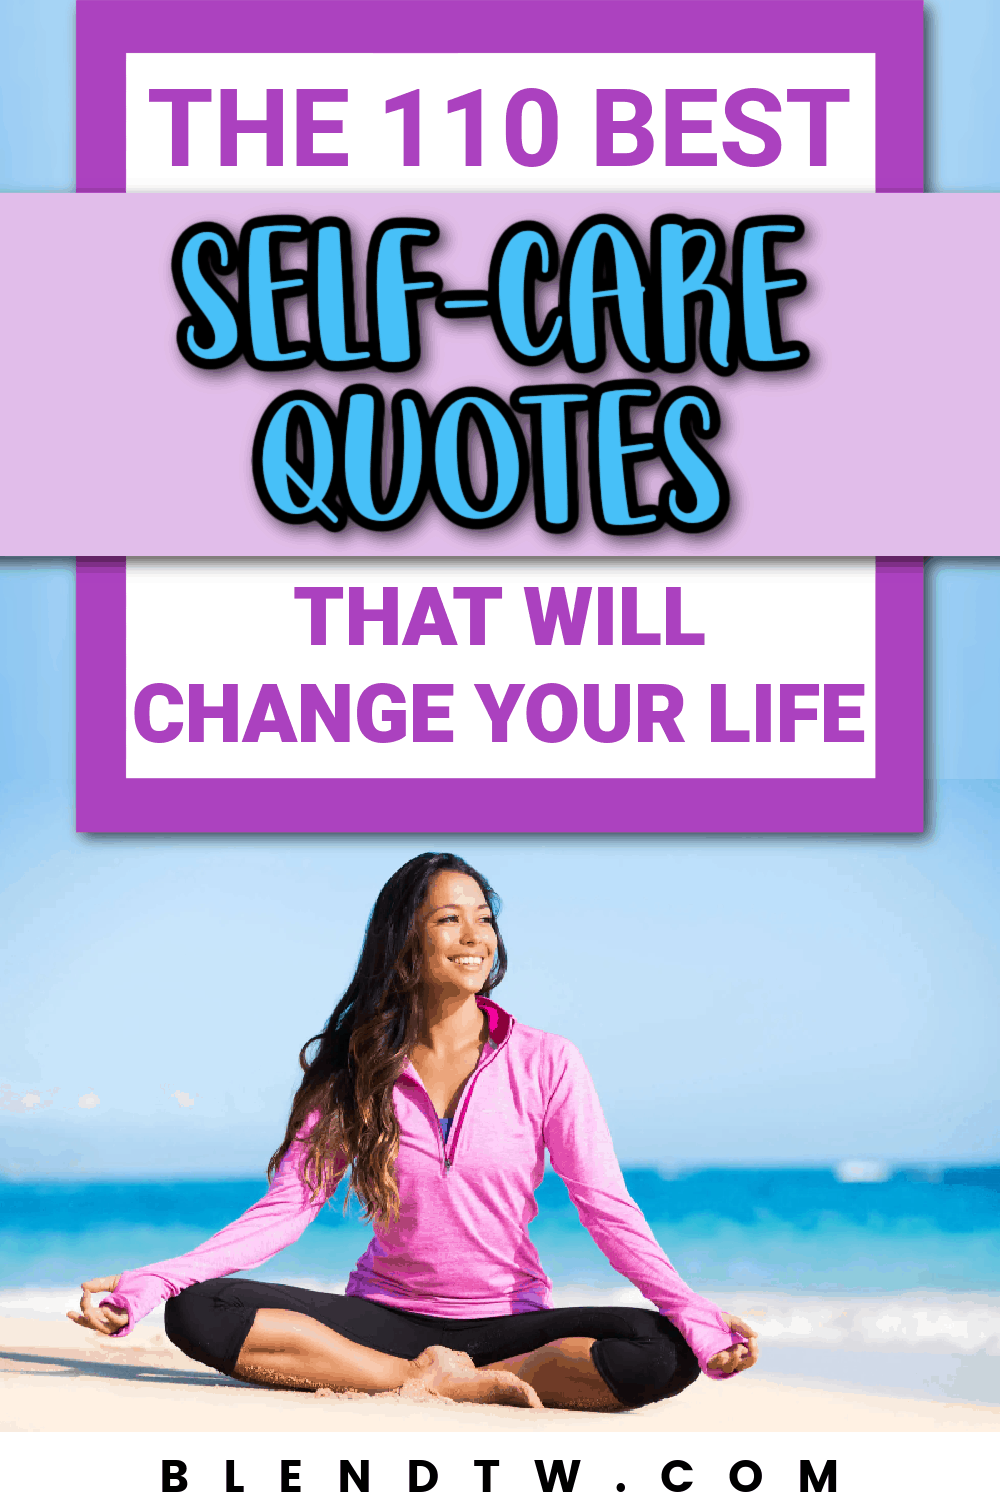 self-care quotes that will change your life